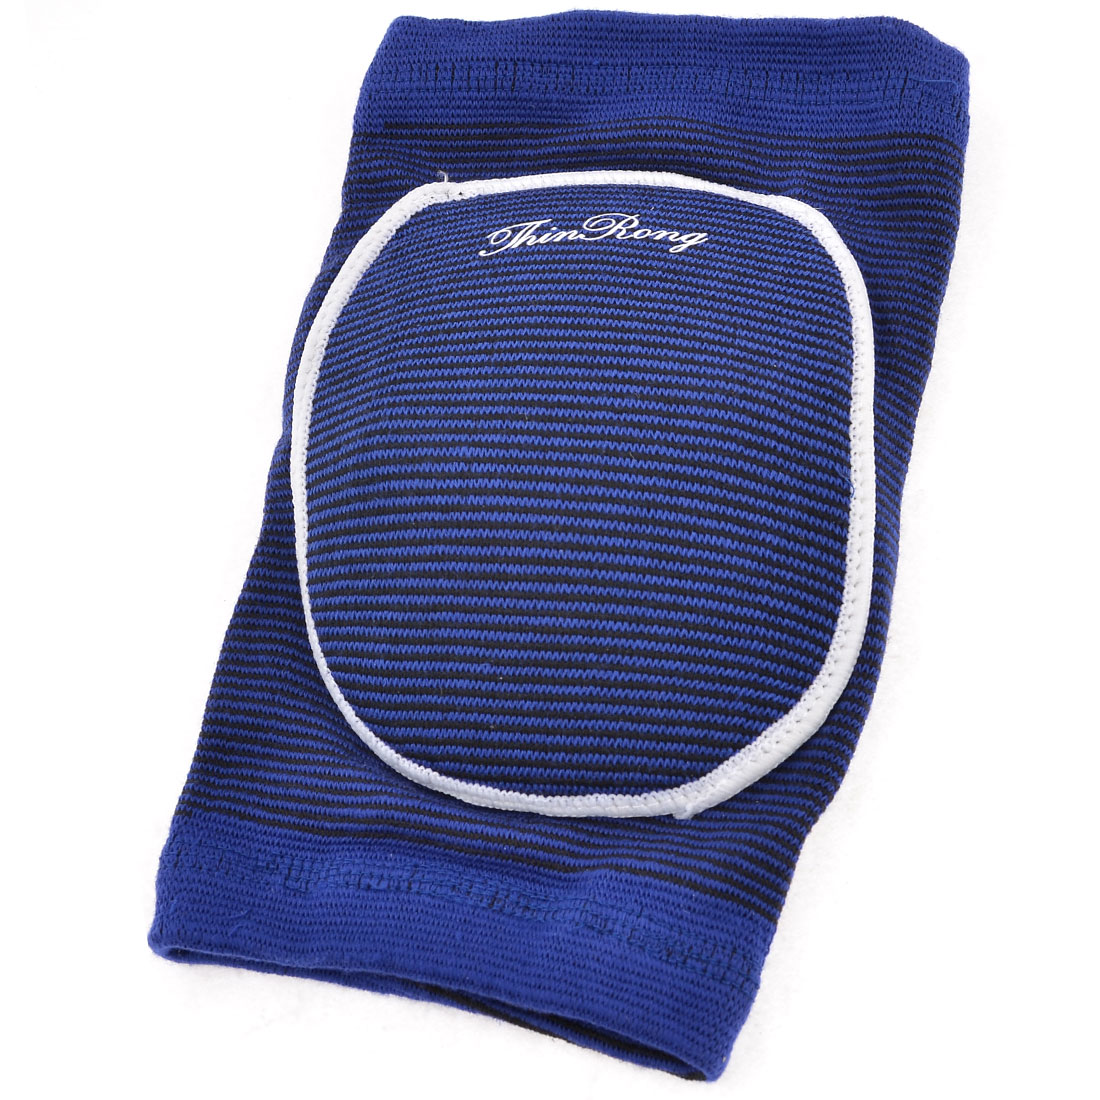 Pullover Wearing Type Blue Black Elastic Knee Support Sport Protector